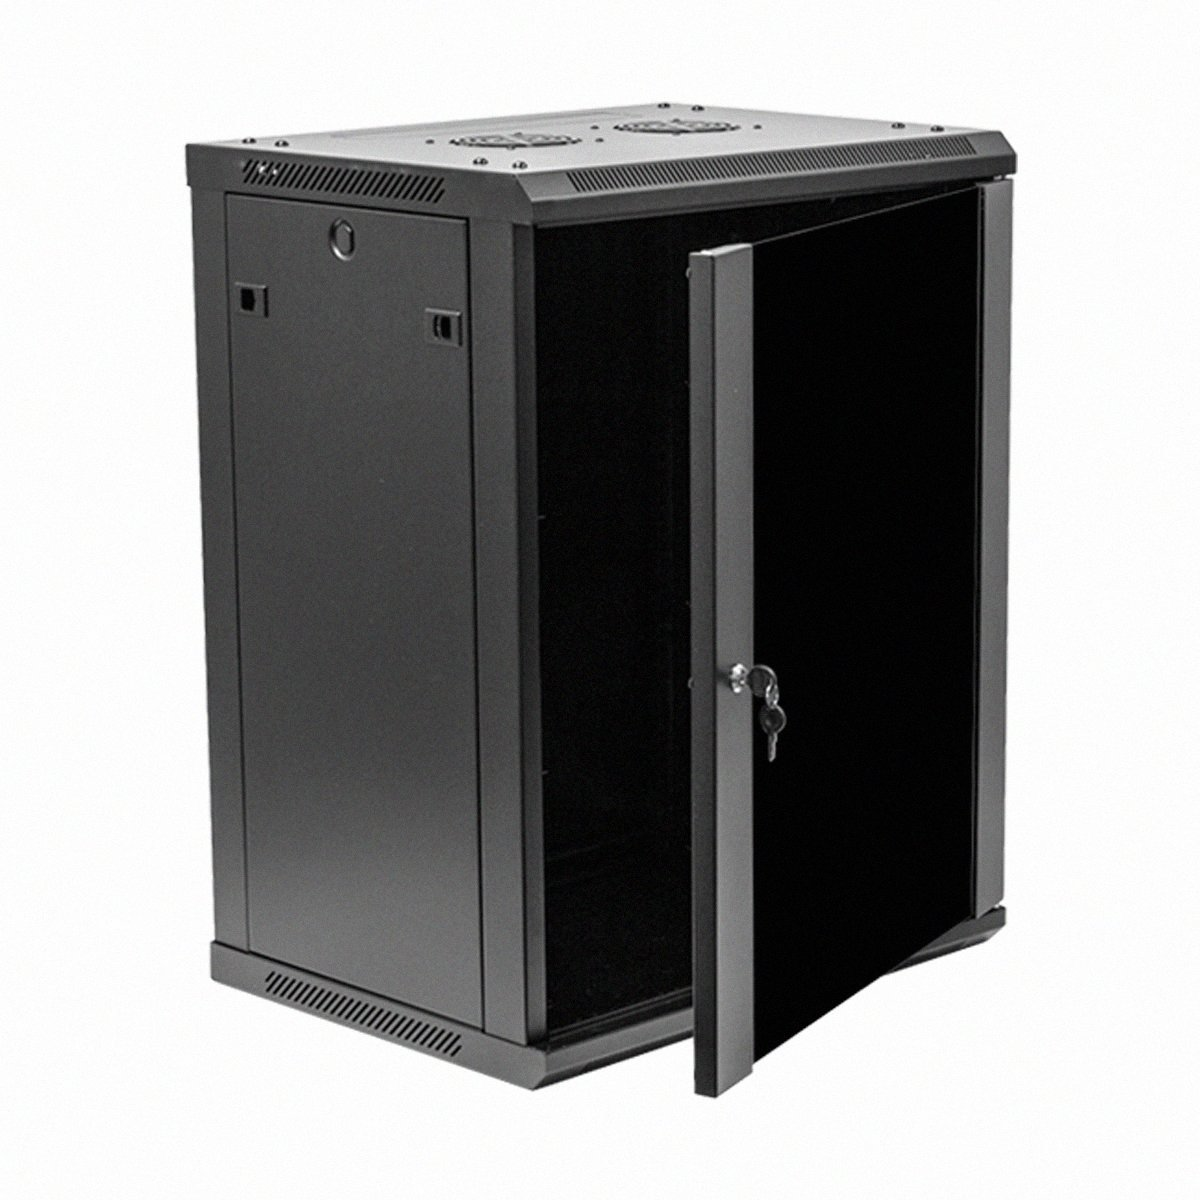 Navepoint 15U Deluxe IT Wallmount Cabinet Enclosure 19-Inch Server Network Rack With Locking Glass Door 16-Inches Deep Black